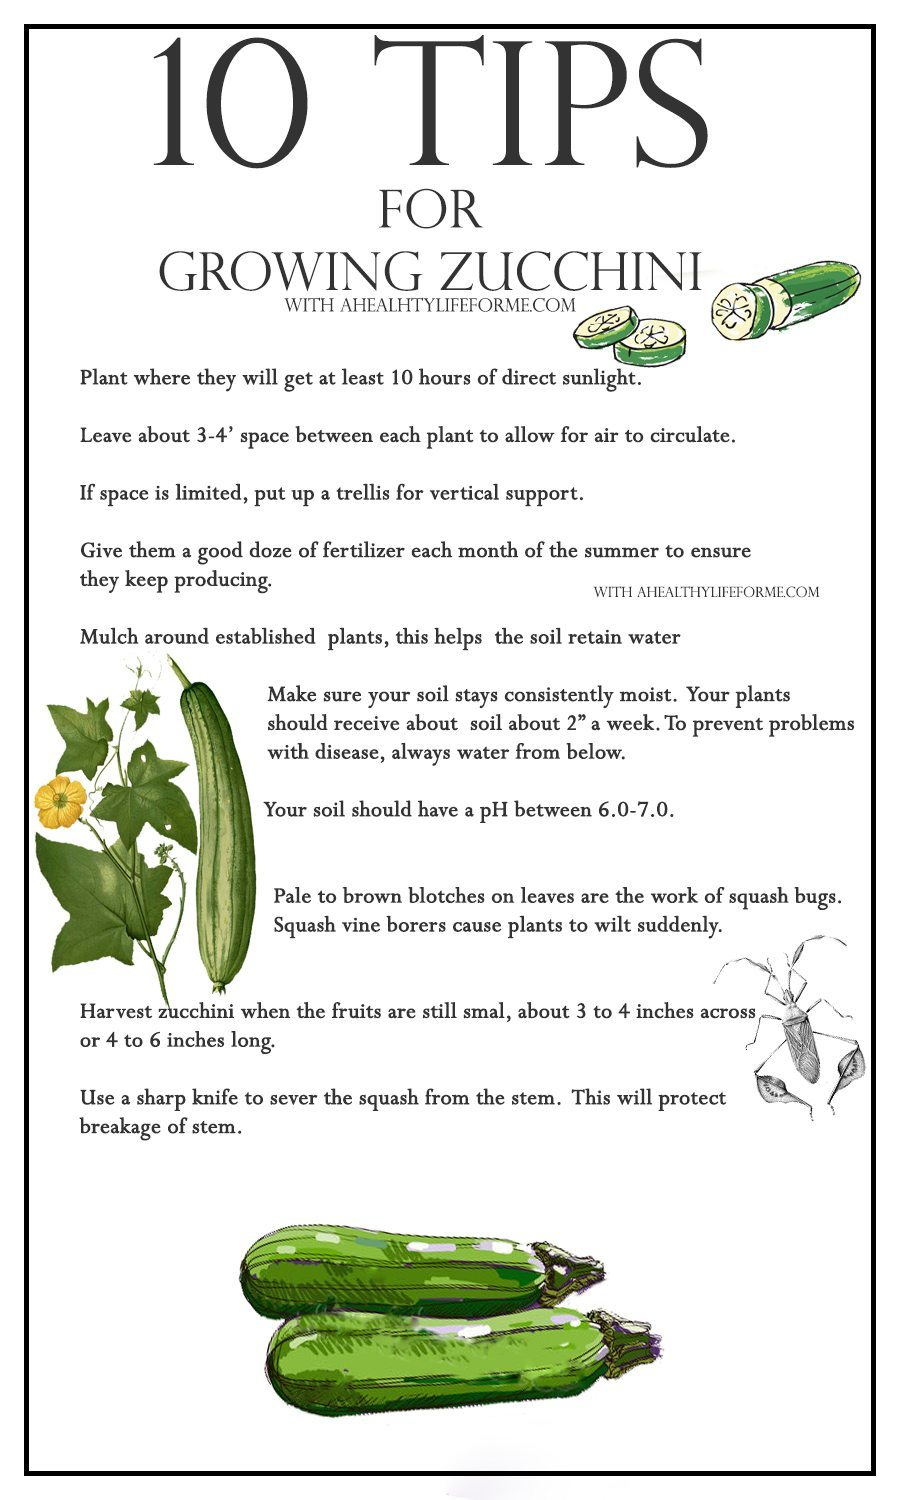 10 tips for growing zucchini a healthy life for me for Gardening tips